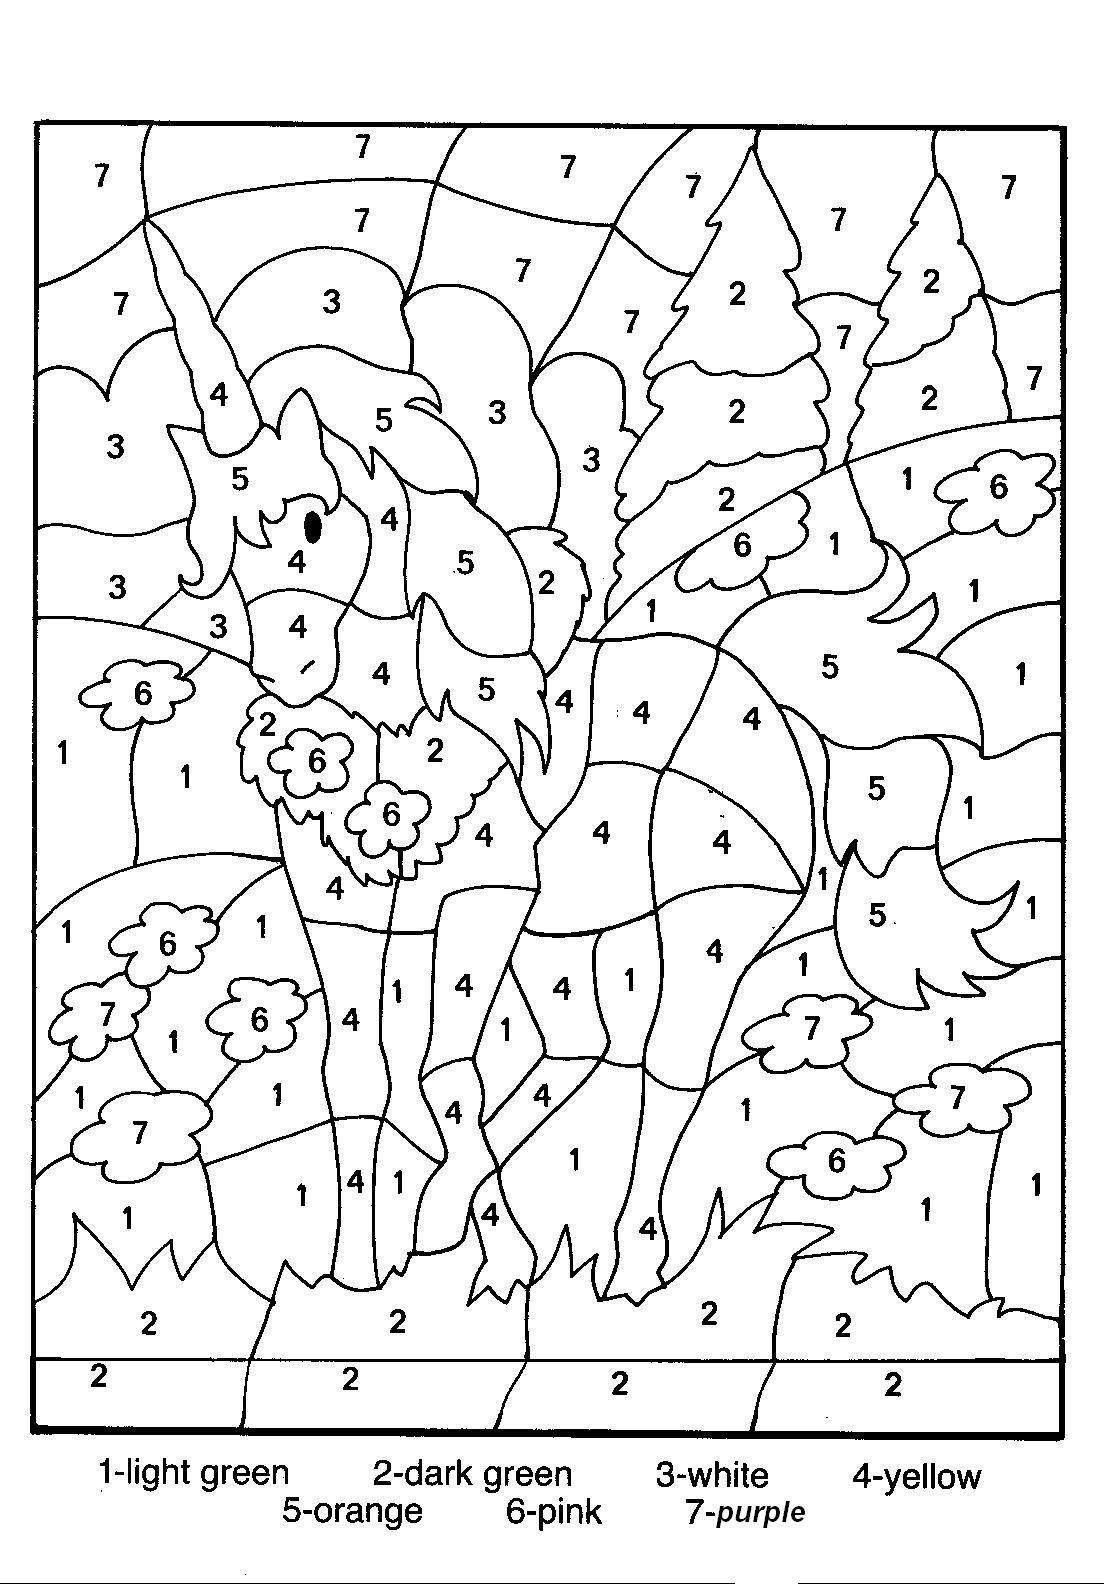 16 Colouring Worksheets Printable Unicorn Coloring Pages Horse Coloring Pages Free Printable Coloring Pages [ 1584 x 1104 Pixel ]